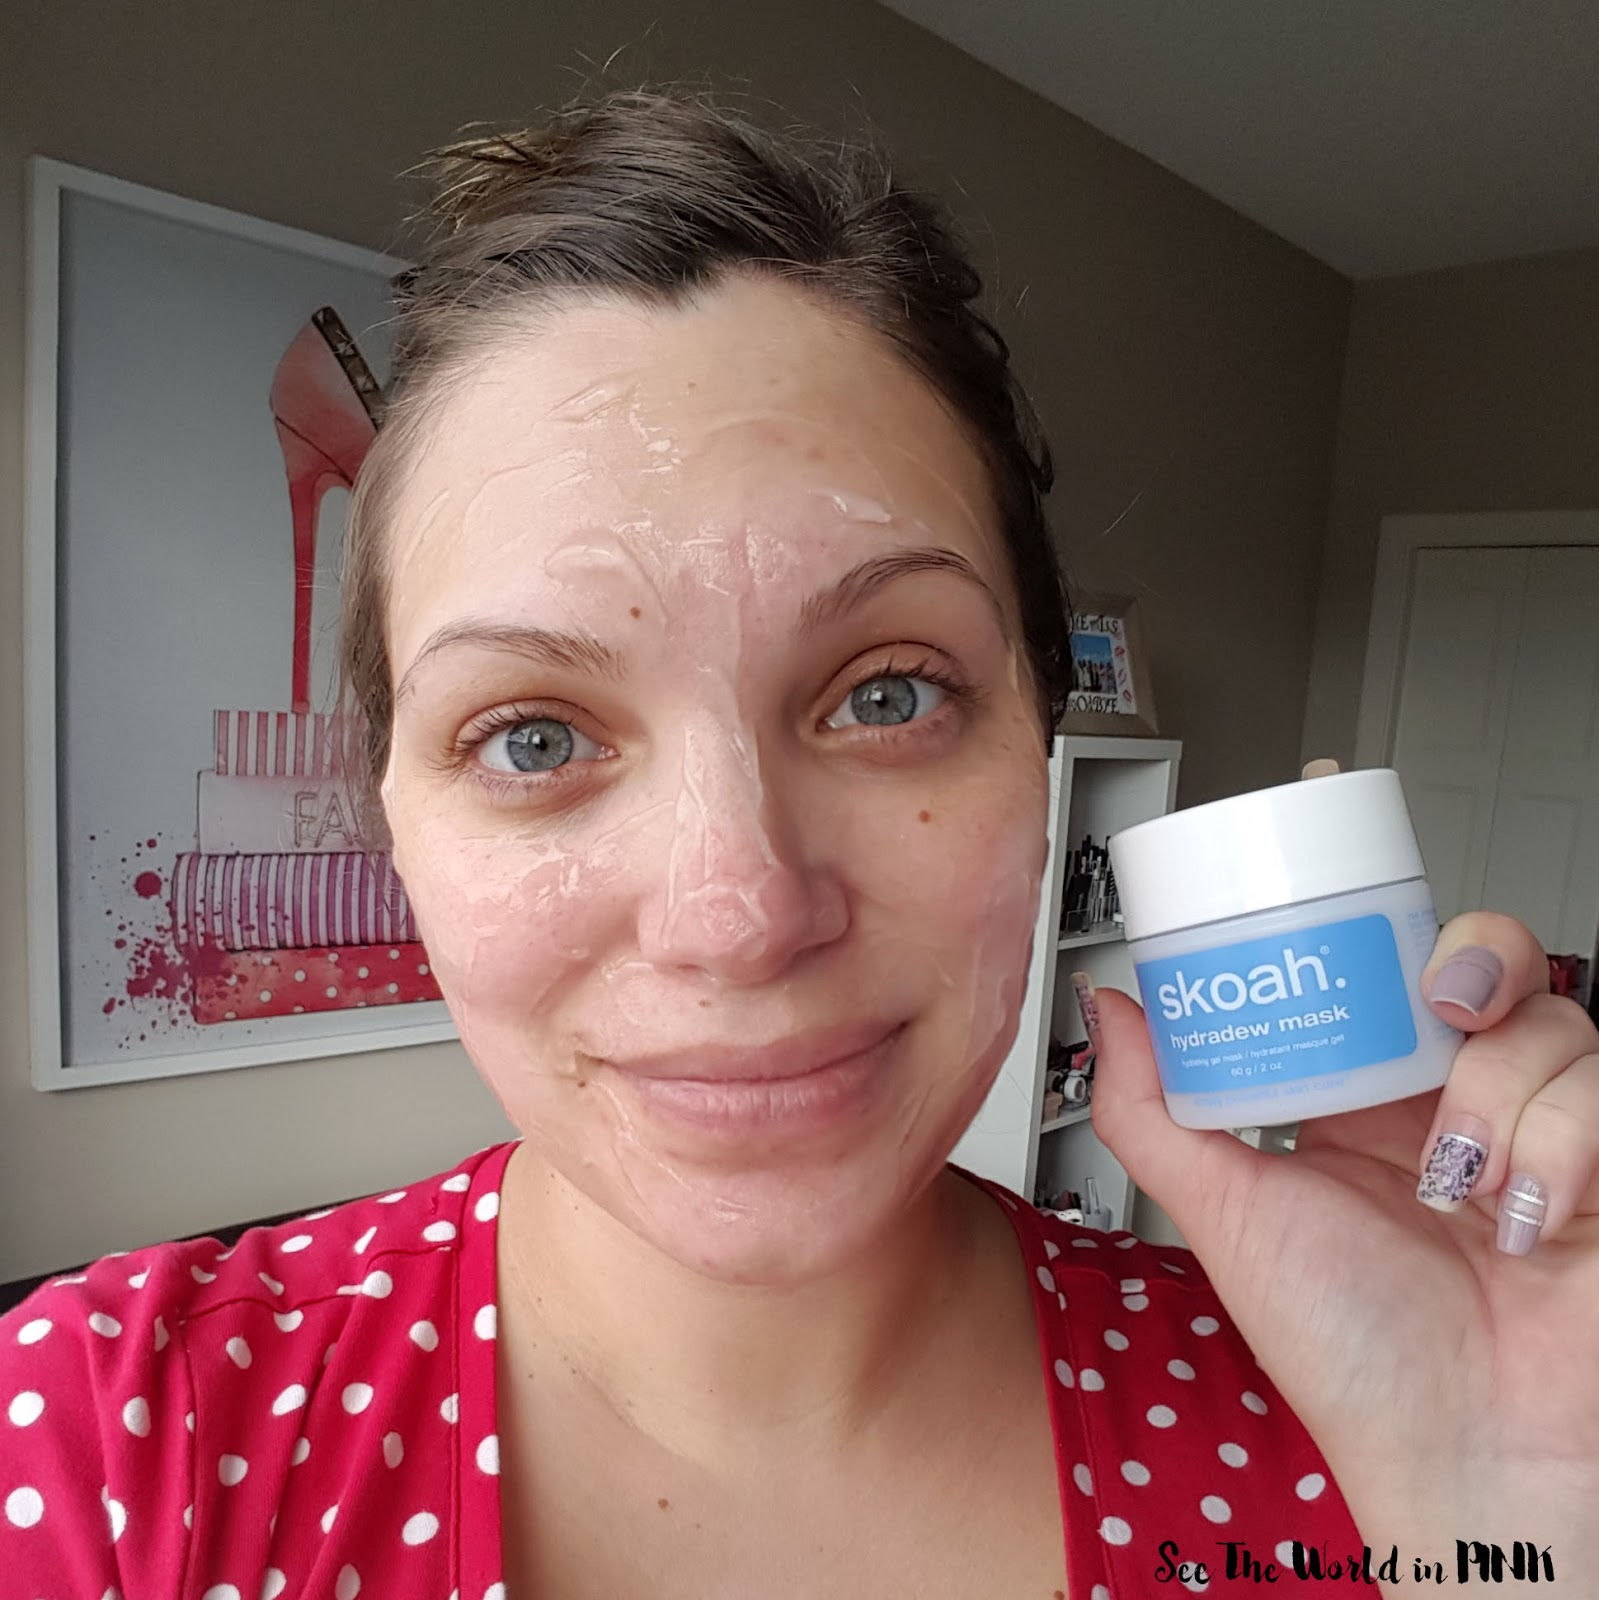 Mask Wednesday - Skoah Hydradew Mask Review + Skoah Calgary Amazing Offer!!!!!!